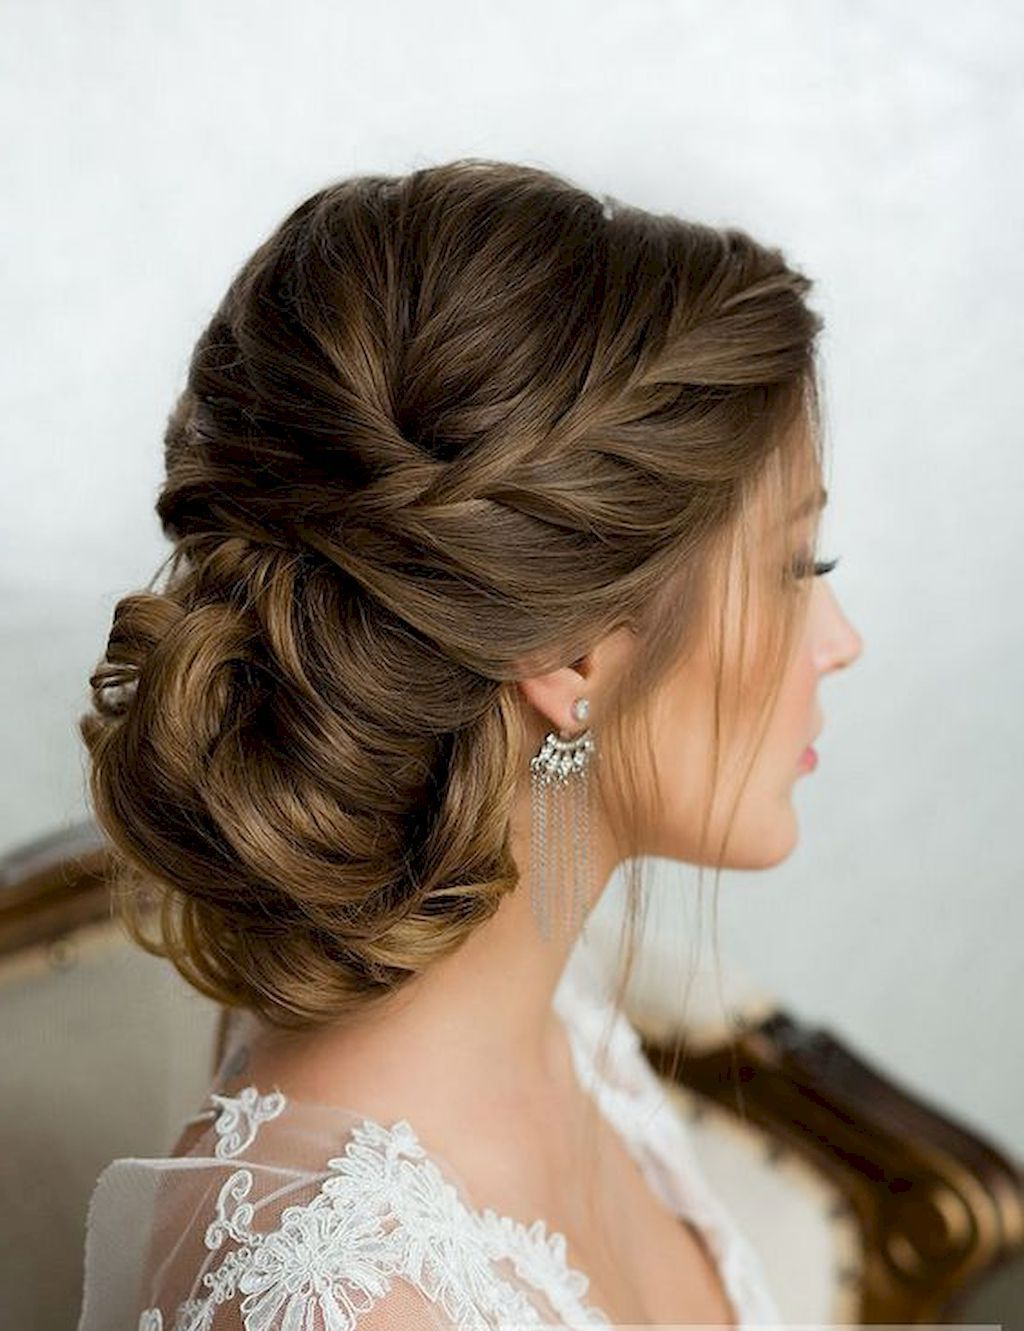 23 Bridal Wedding Hairstyles For Long Hair That Will Inspire (View 18 of 20)